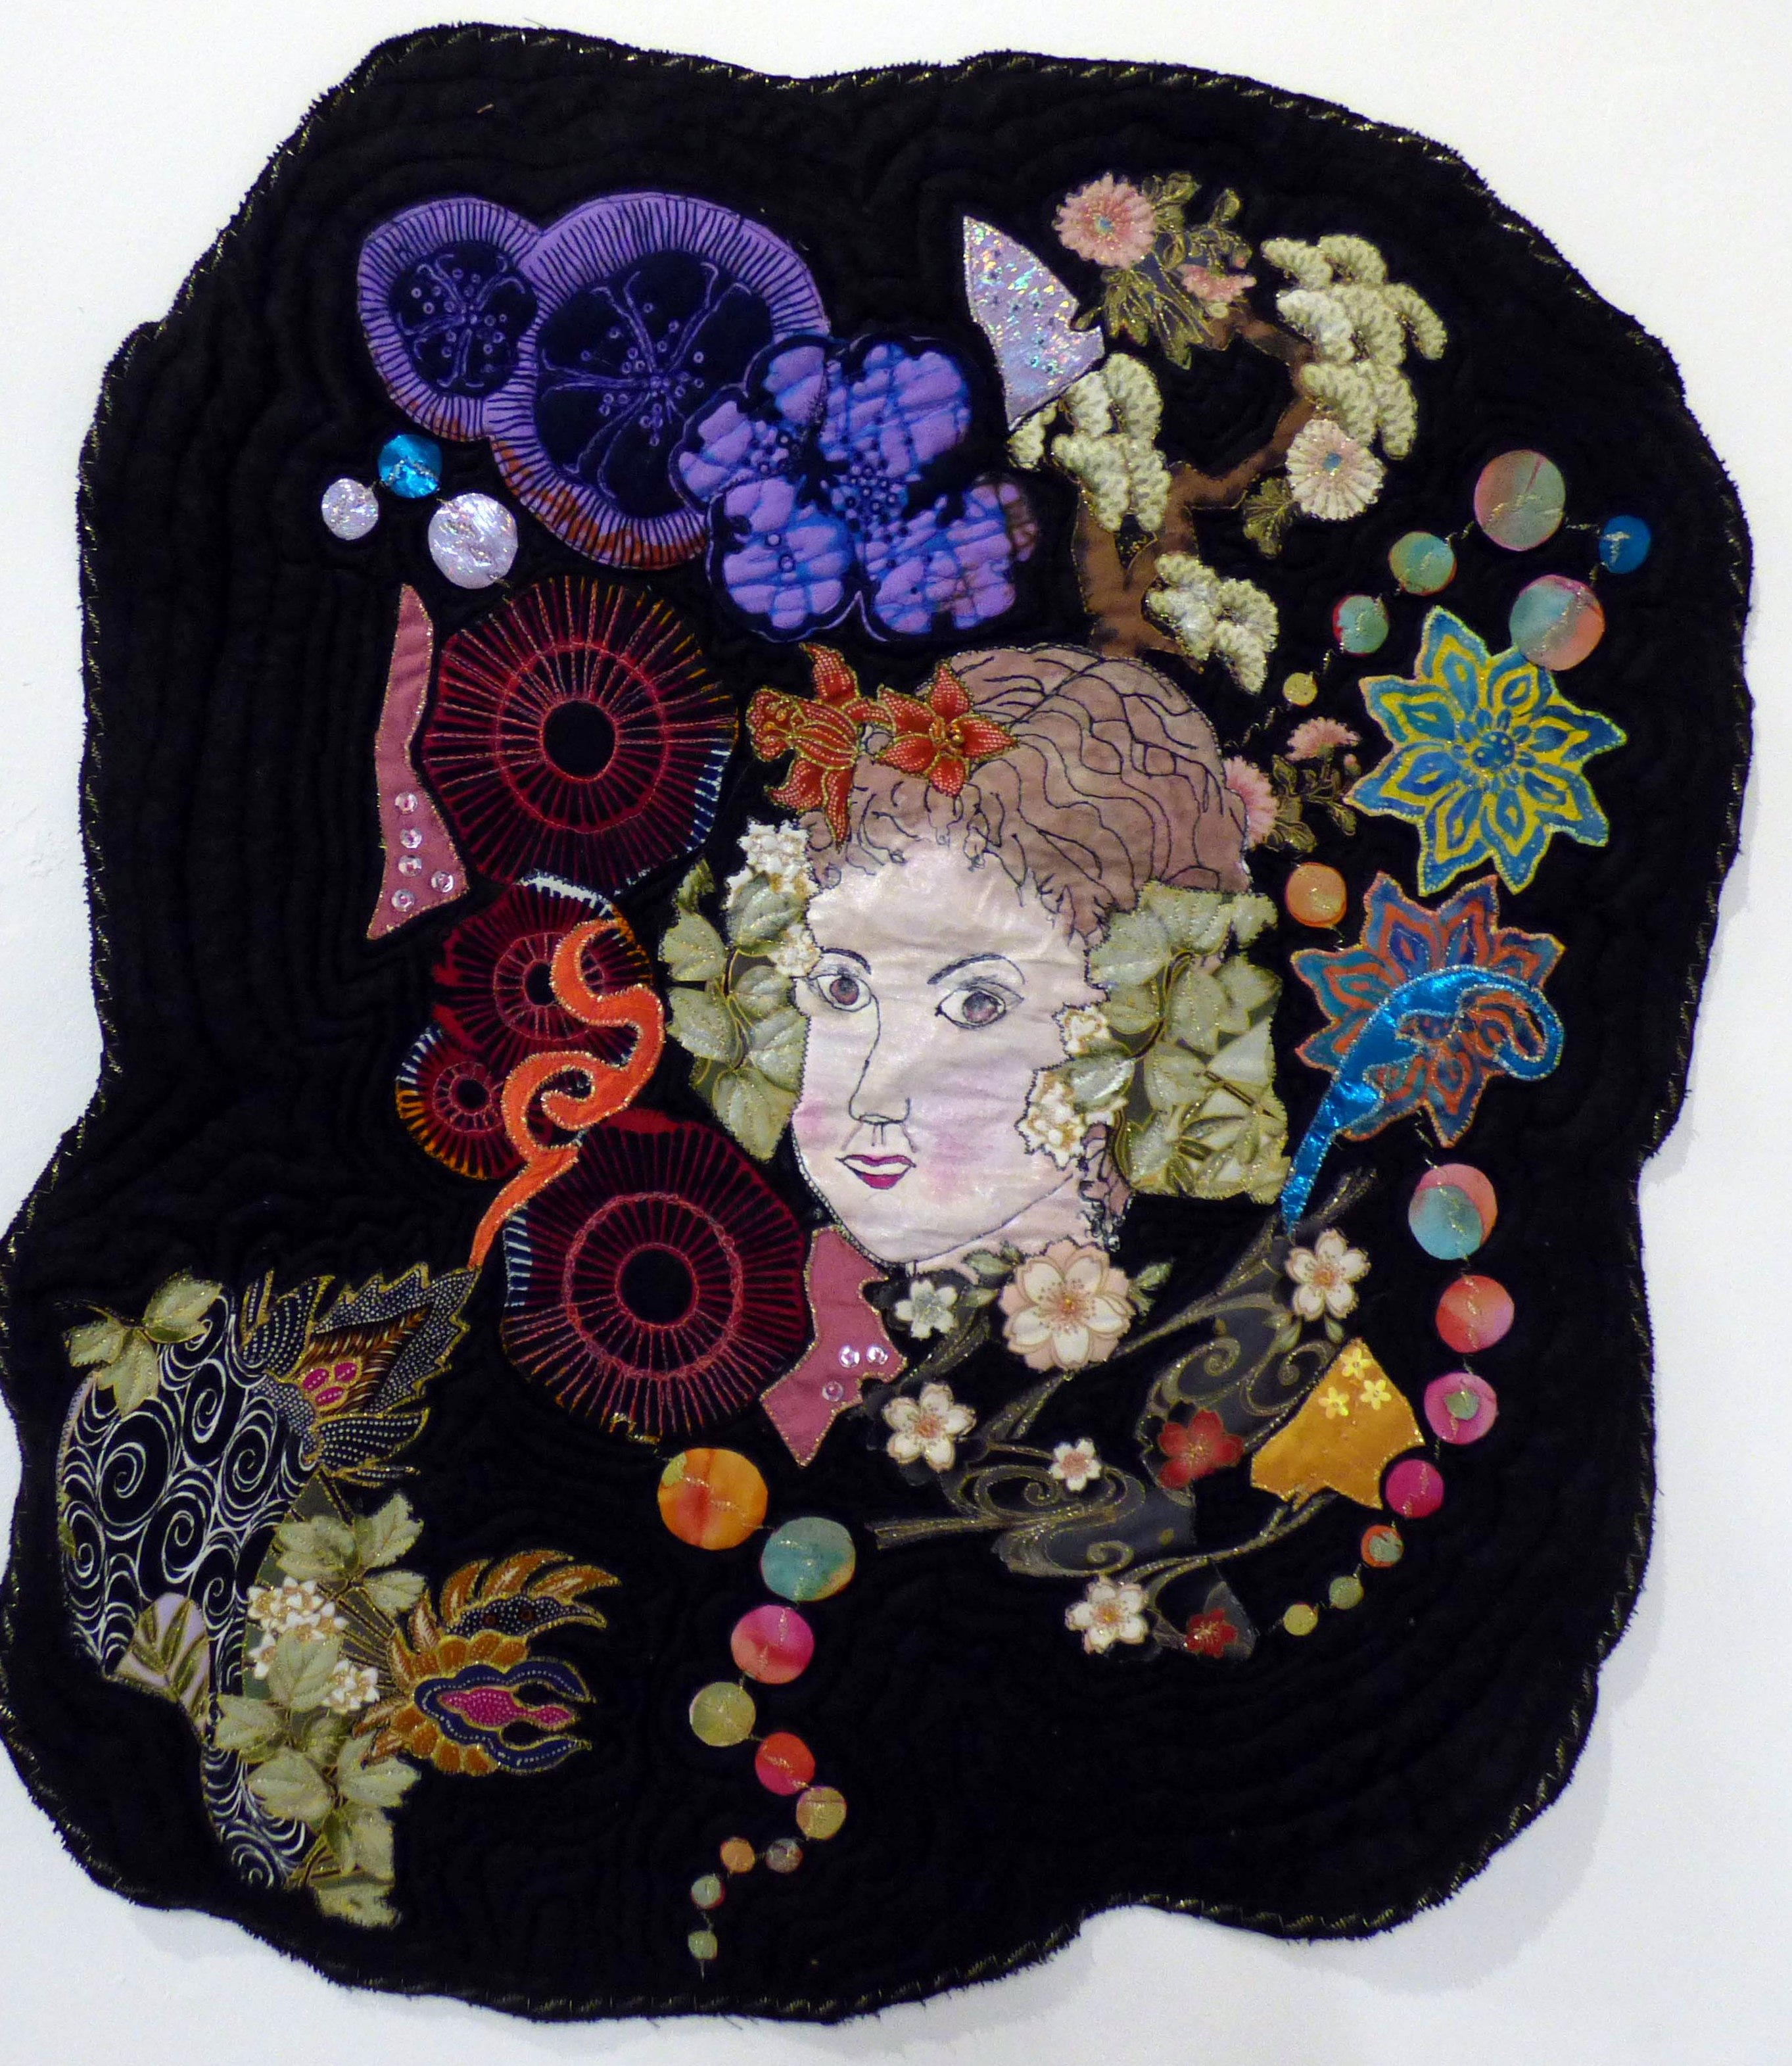 GIRL AMONGST THE FLOWERS by Sue Chisnall-Sumner, Natural Progression Group, July 2021